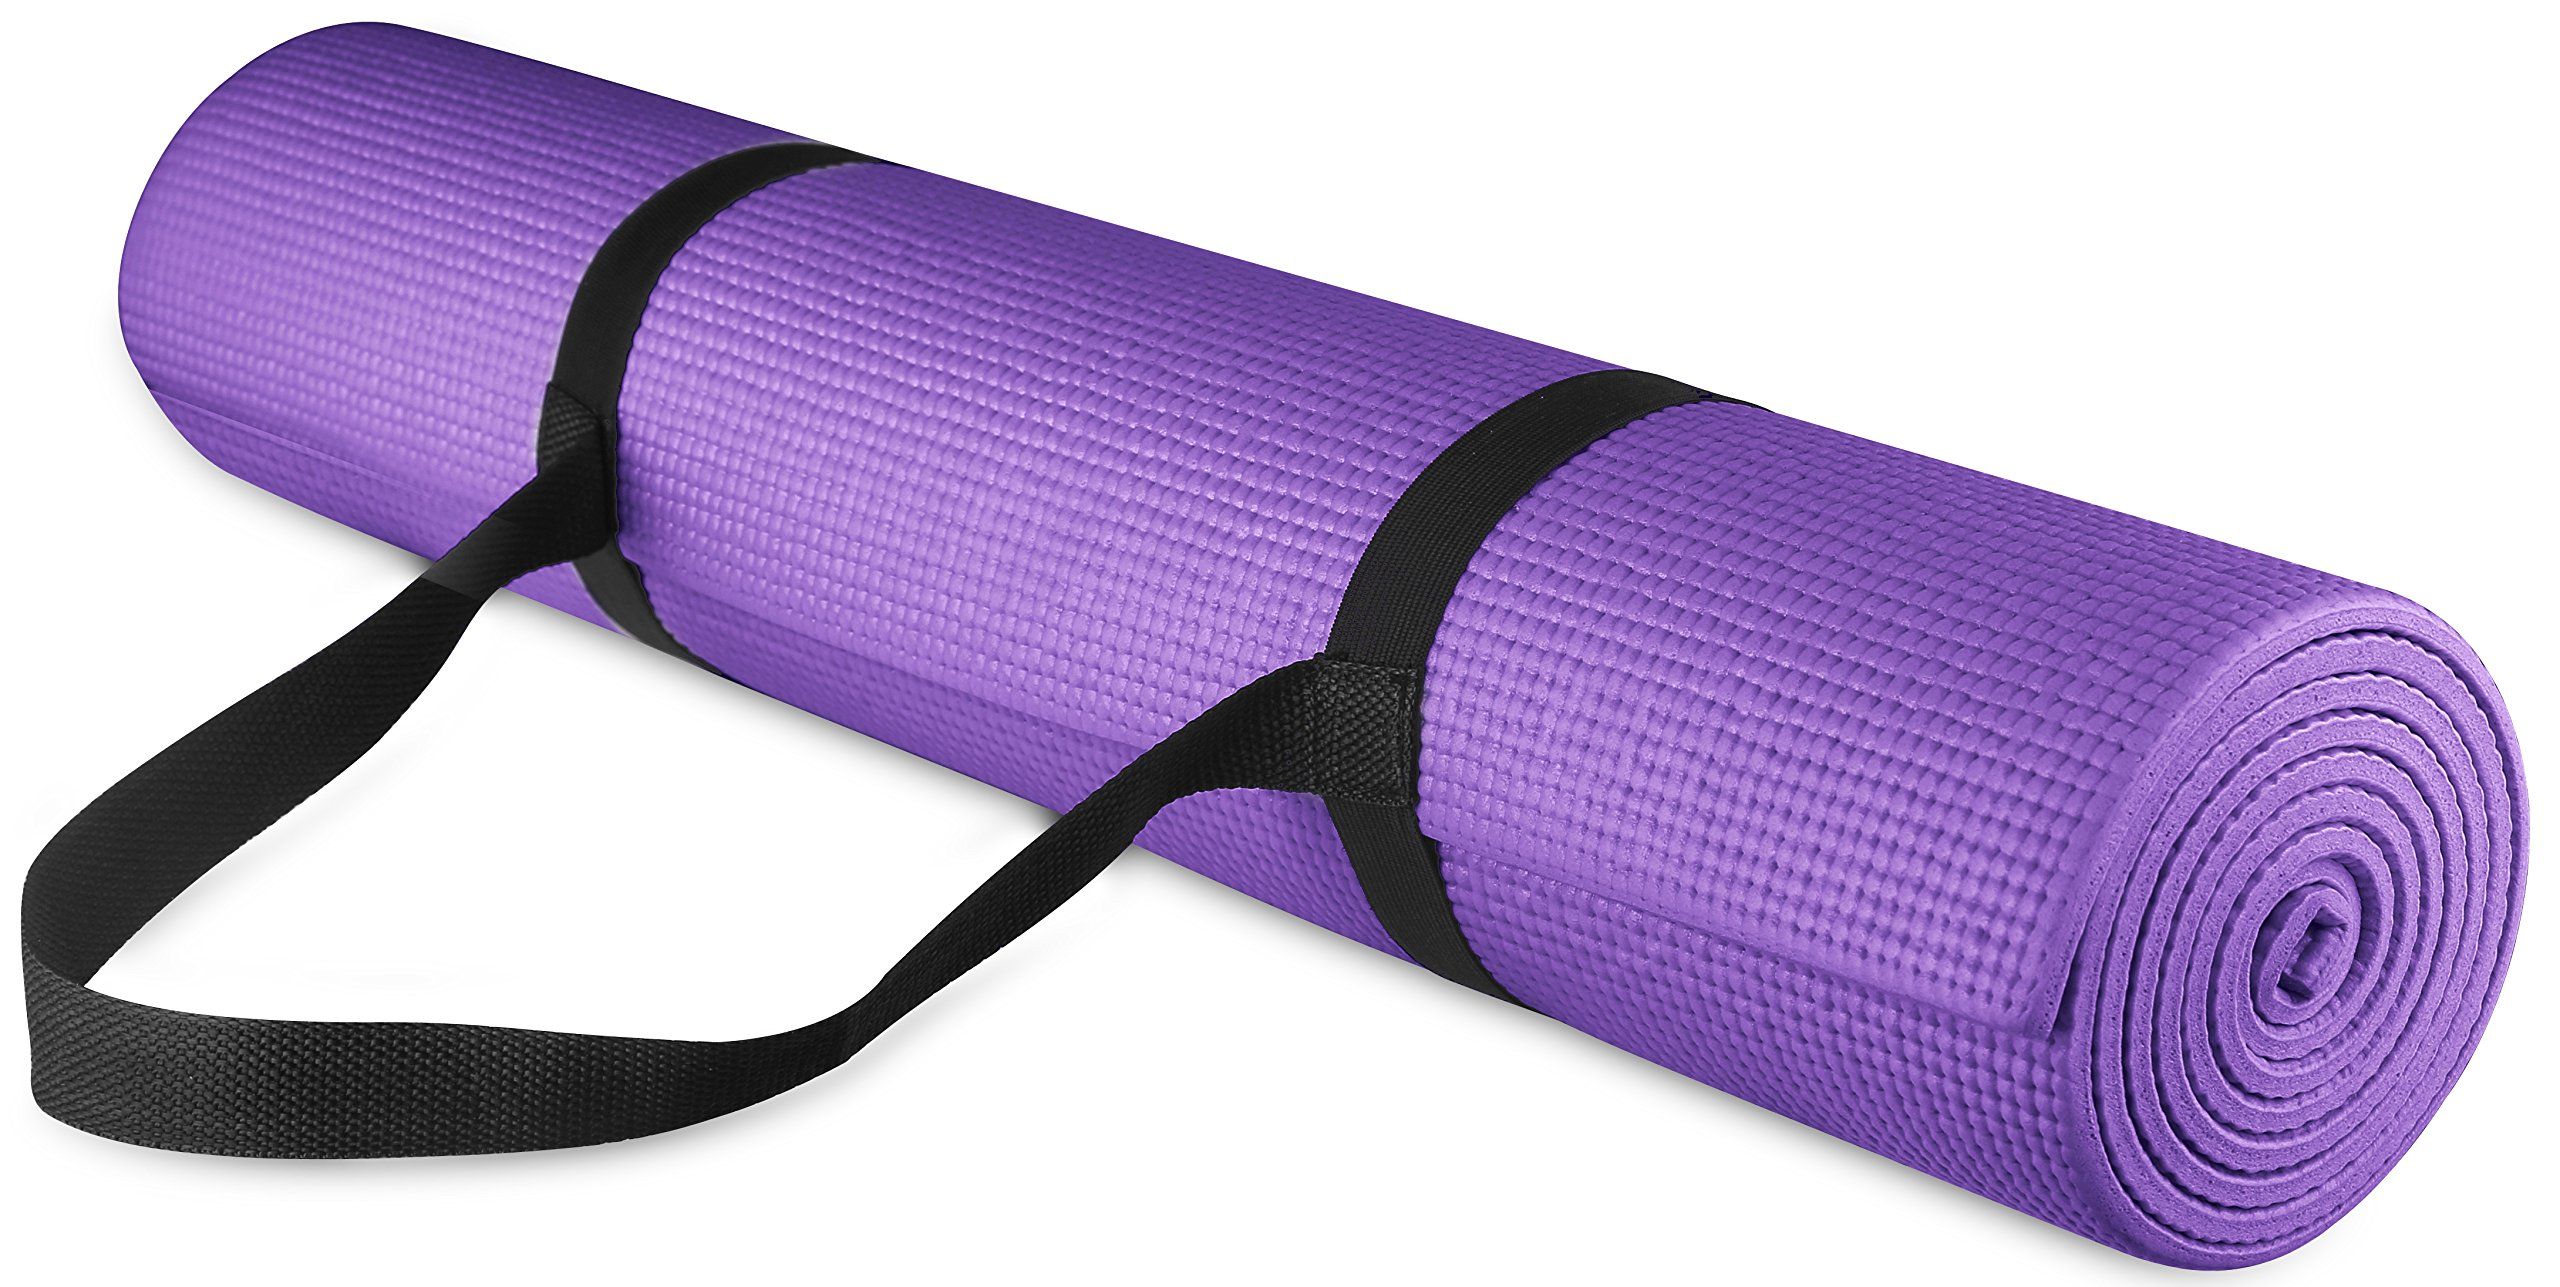 BalanceFrom GoYoga All Purpose High Density Non-Slip Exercise Yoga Mat with Carrying Strap, 1/4'', Purple